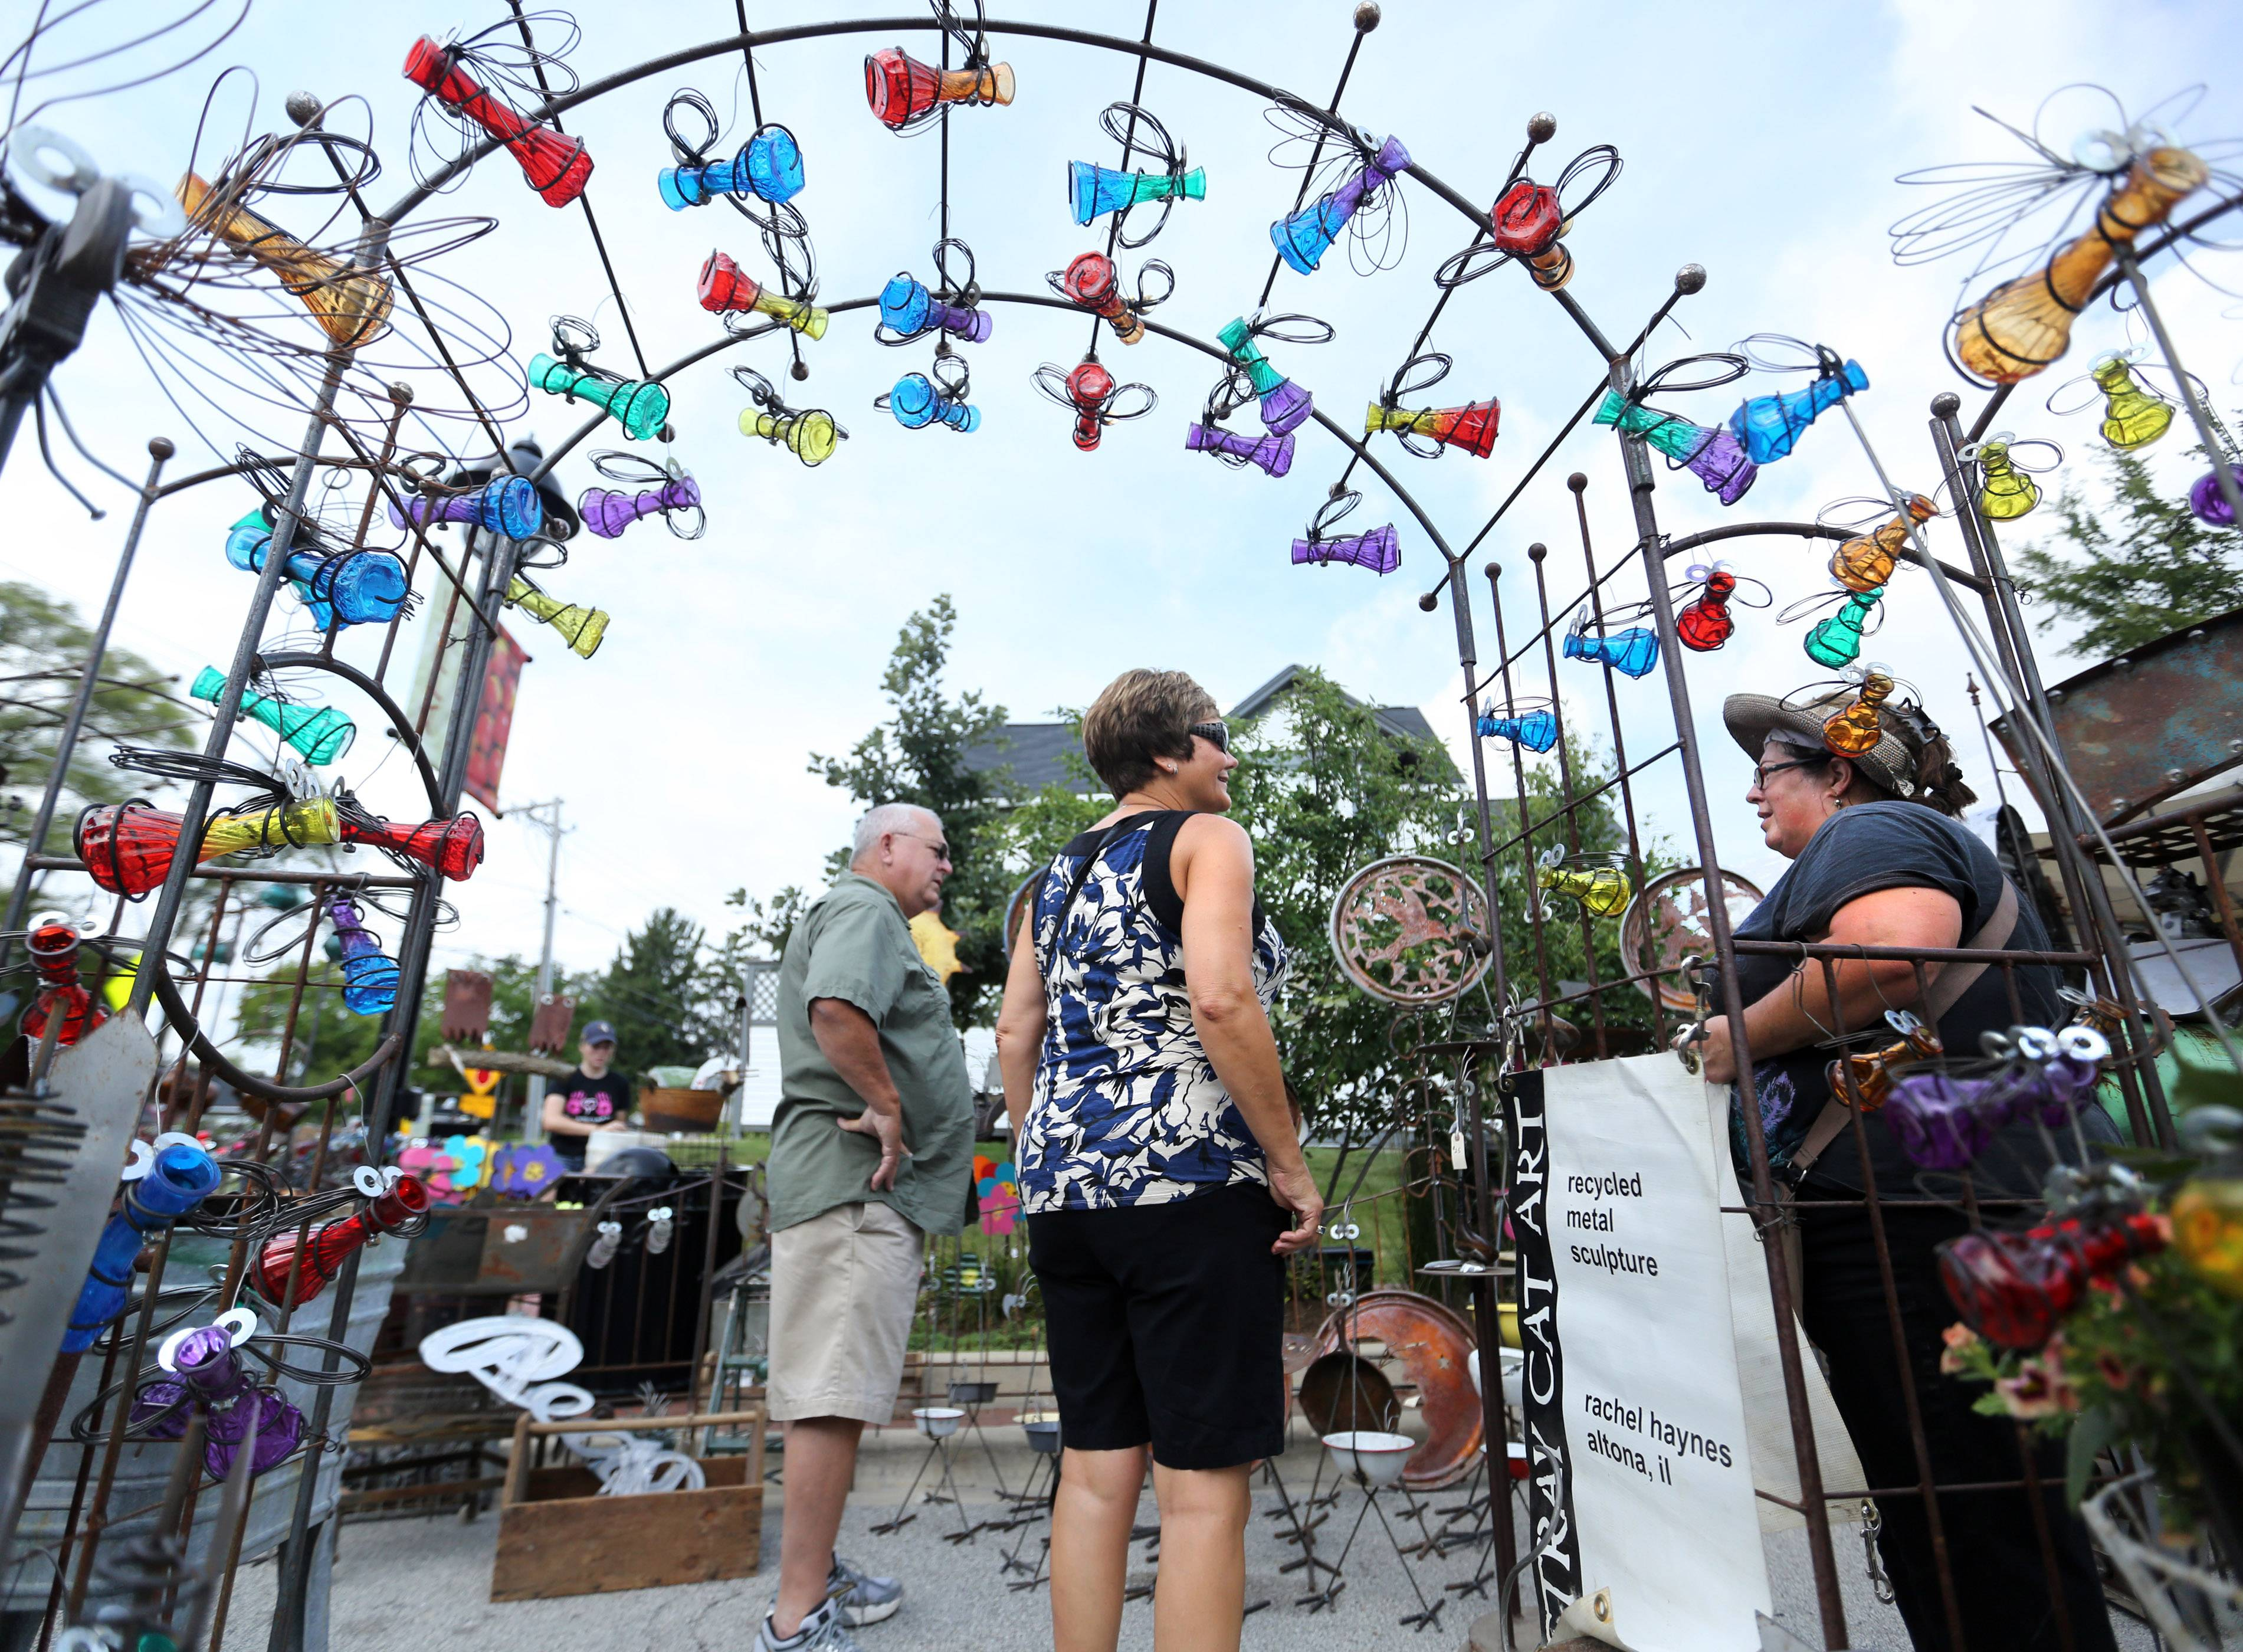 Linda and Mike Mouser, of Carlock, Illinois, talk with metal and glass artist Rachel Haynes of Altona, Illinois, about her large display of work at Long Grove Village Art Market on Saturday in Long Grove.